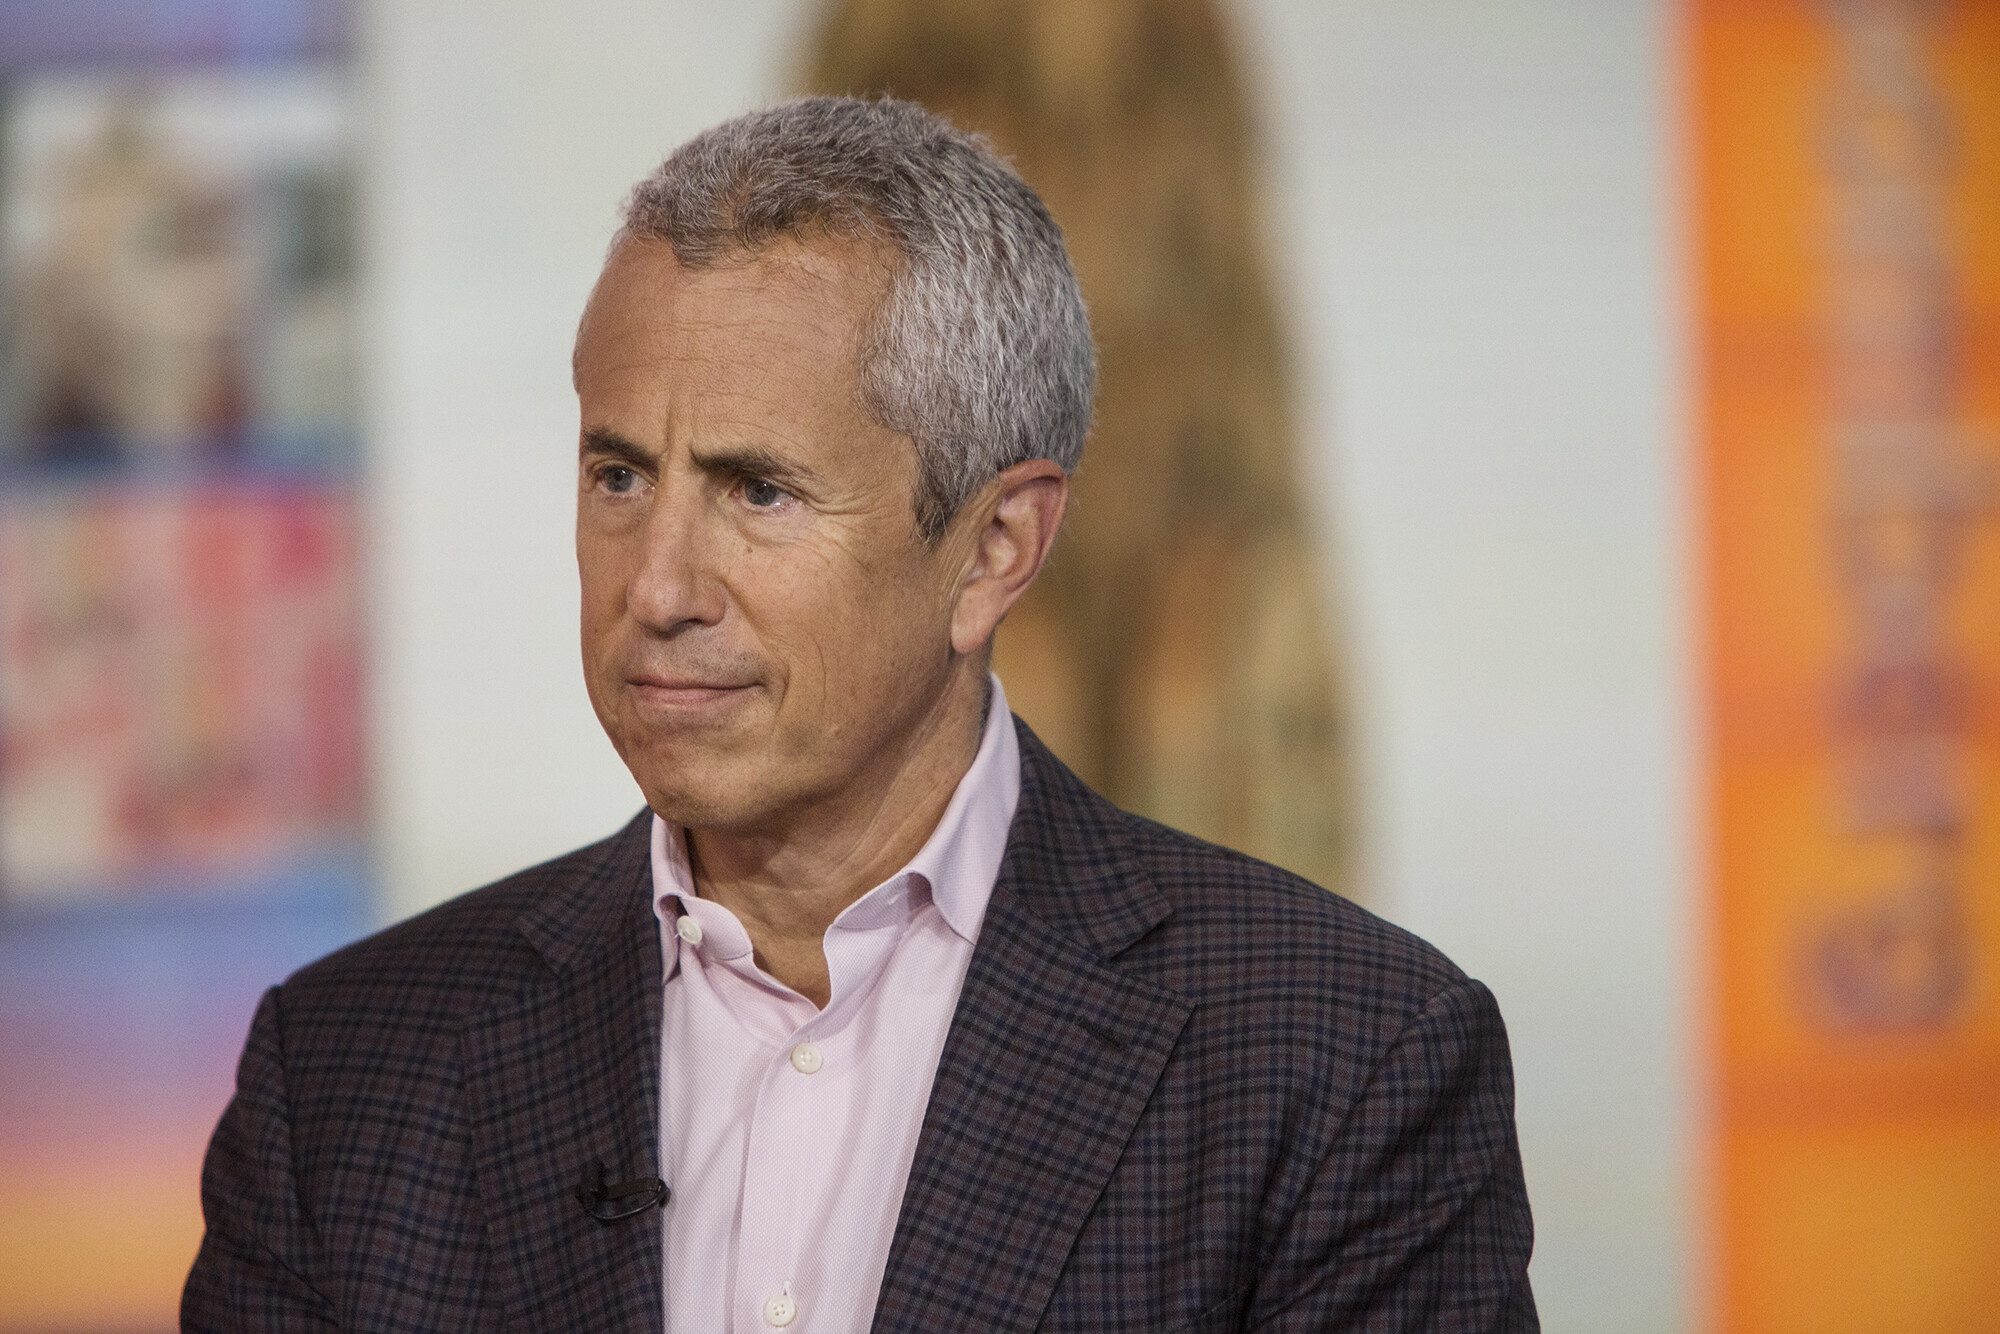 Danny Meyer: If you want to be unvaccinated, 'you can dine somewhere else'